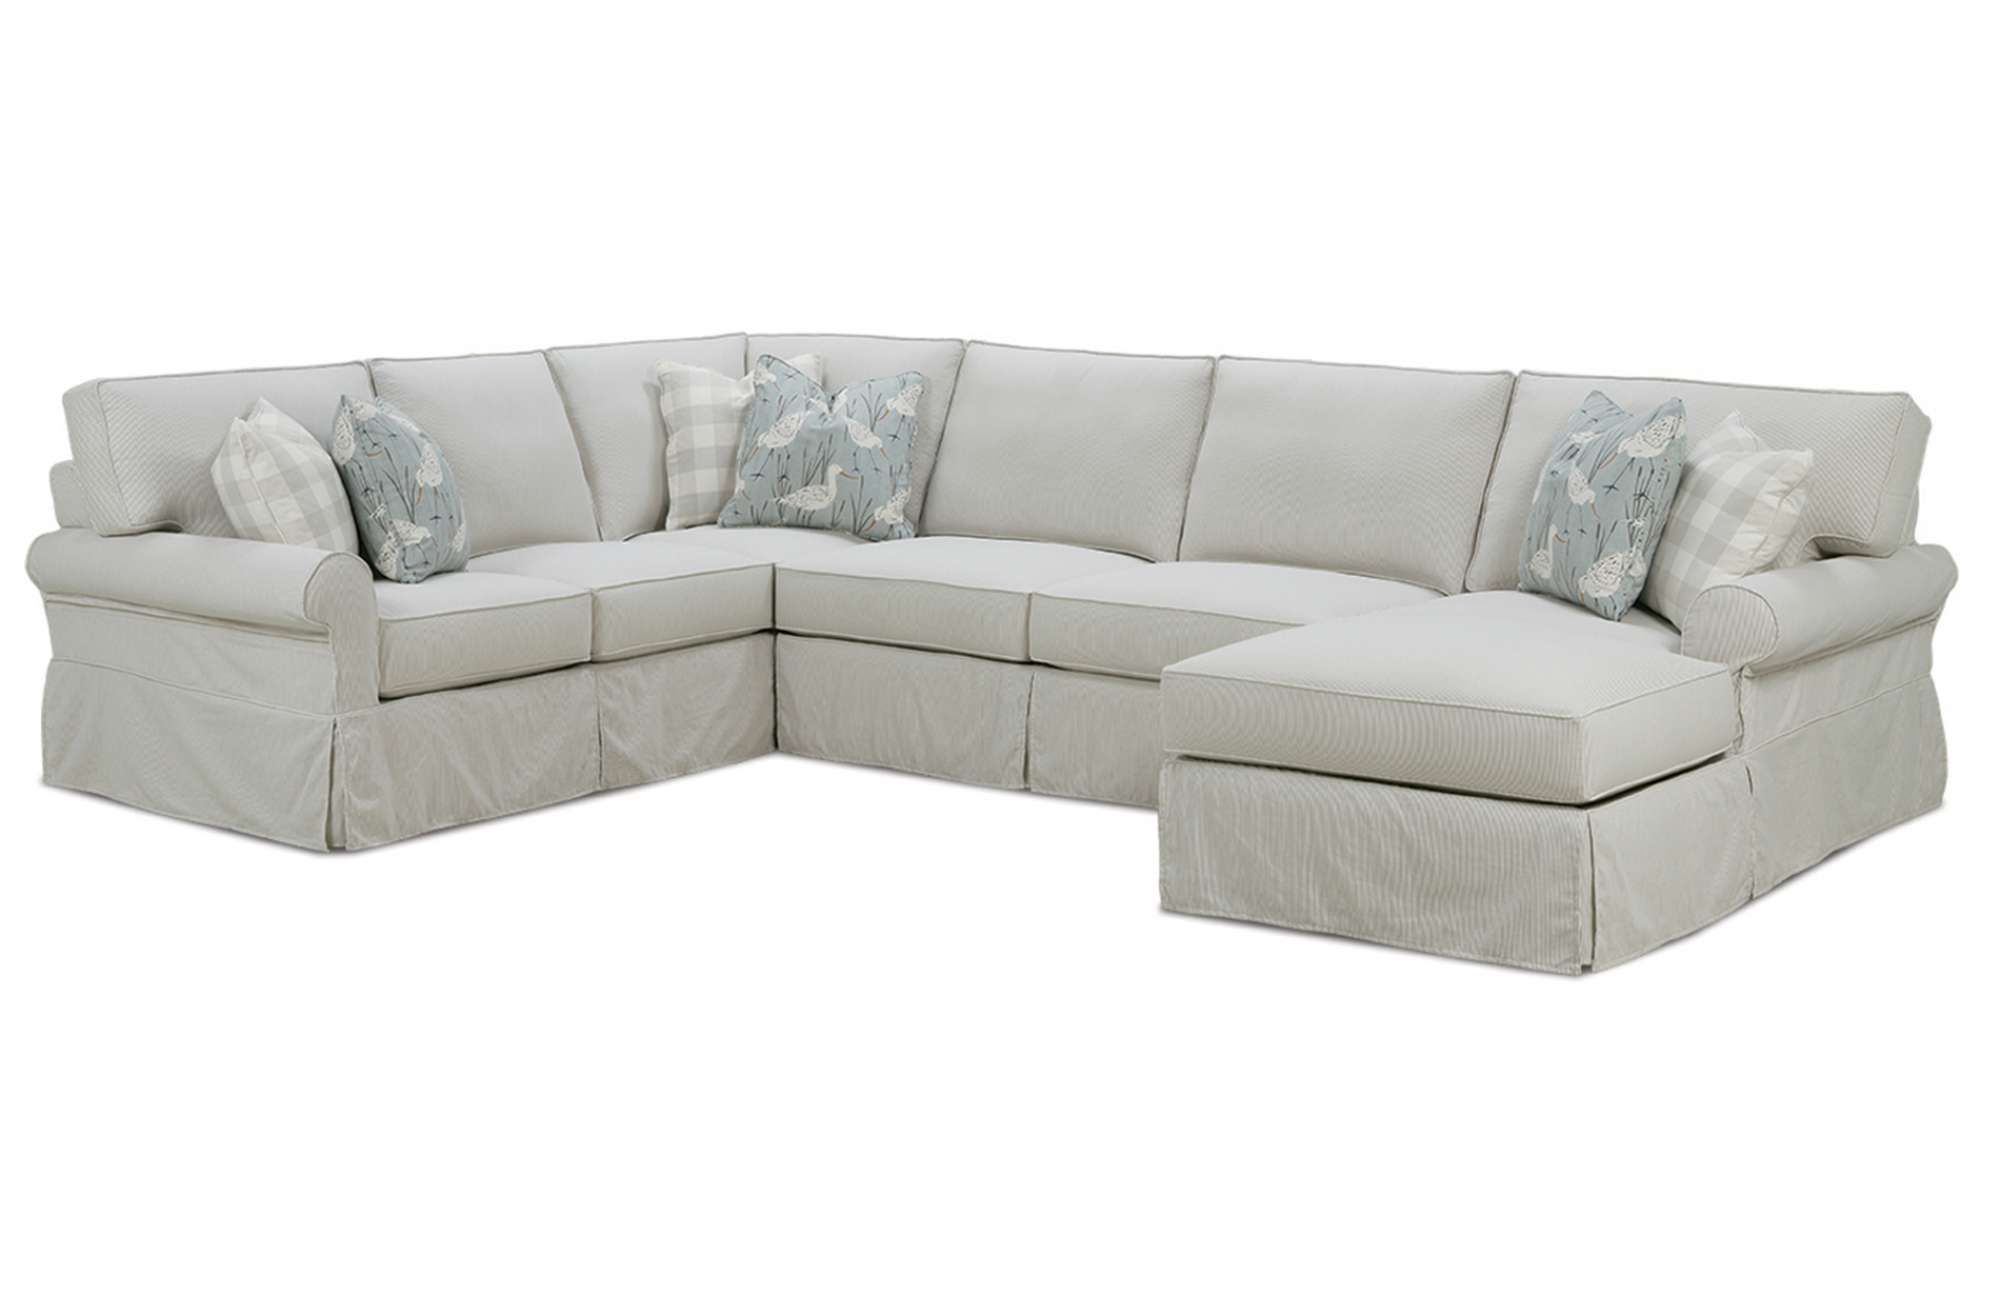 Rowe 7860 Addison Sectional available at Hickory Park Furniture